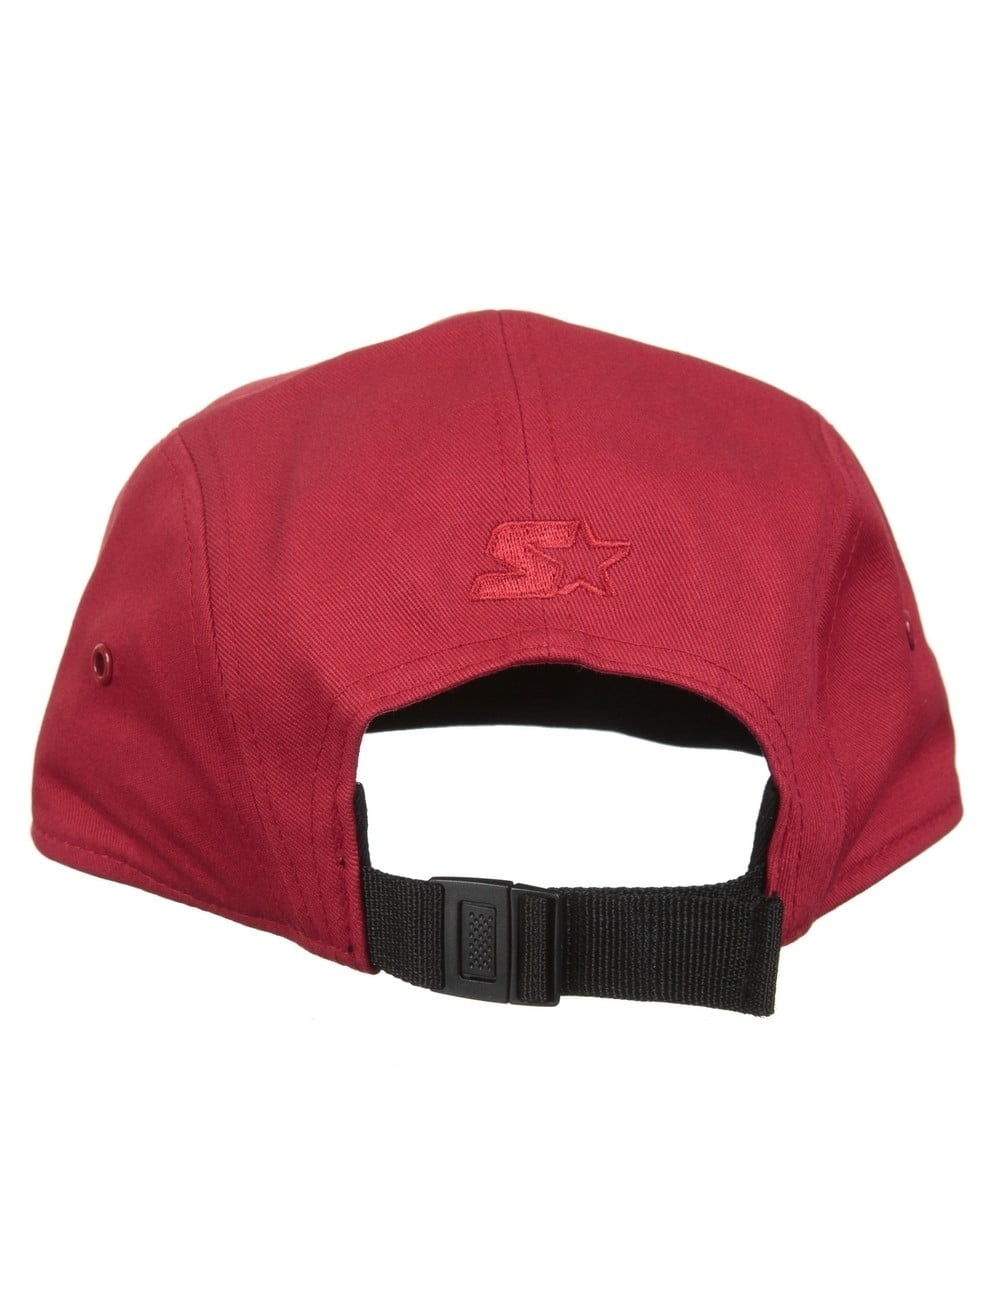 8ef5e6db9ac0d Carhartt WIP Shore Starter Cap - Fire Red/Black - Accessories from ...